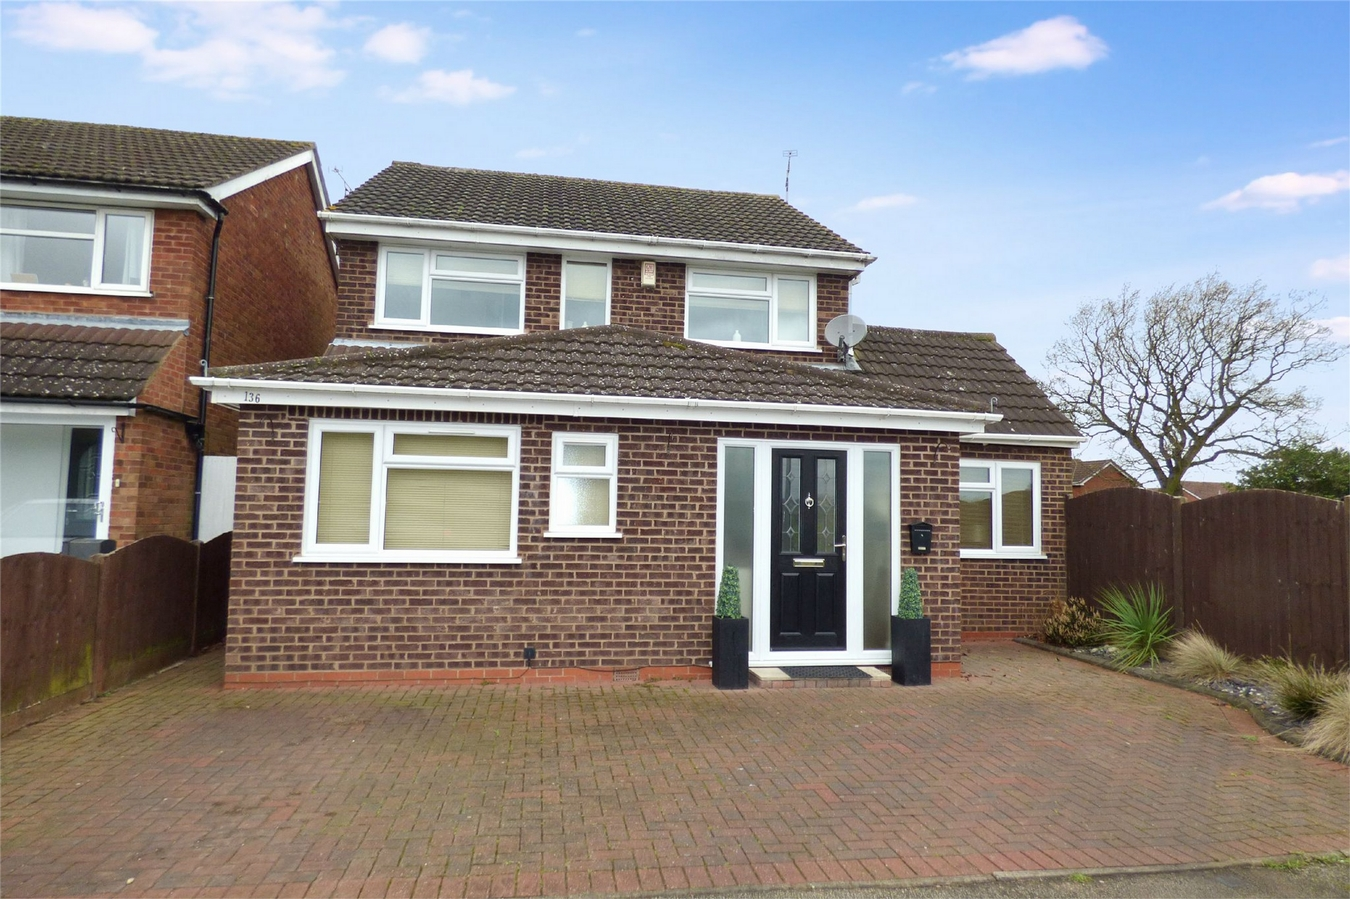 Property For Sale In Caldecote Beds